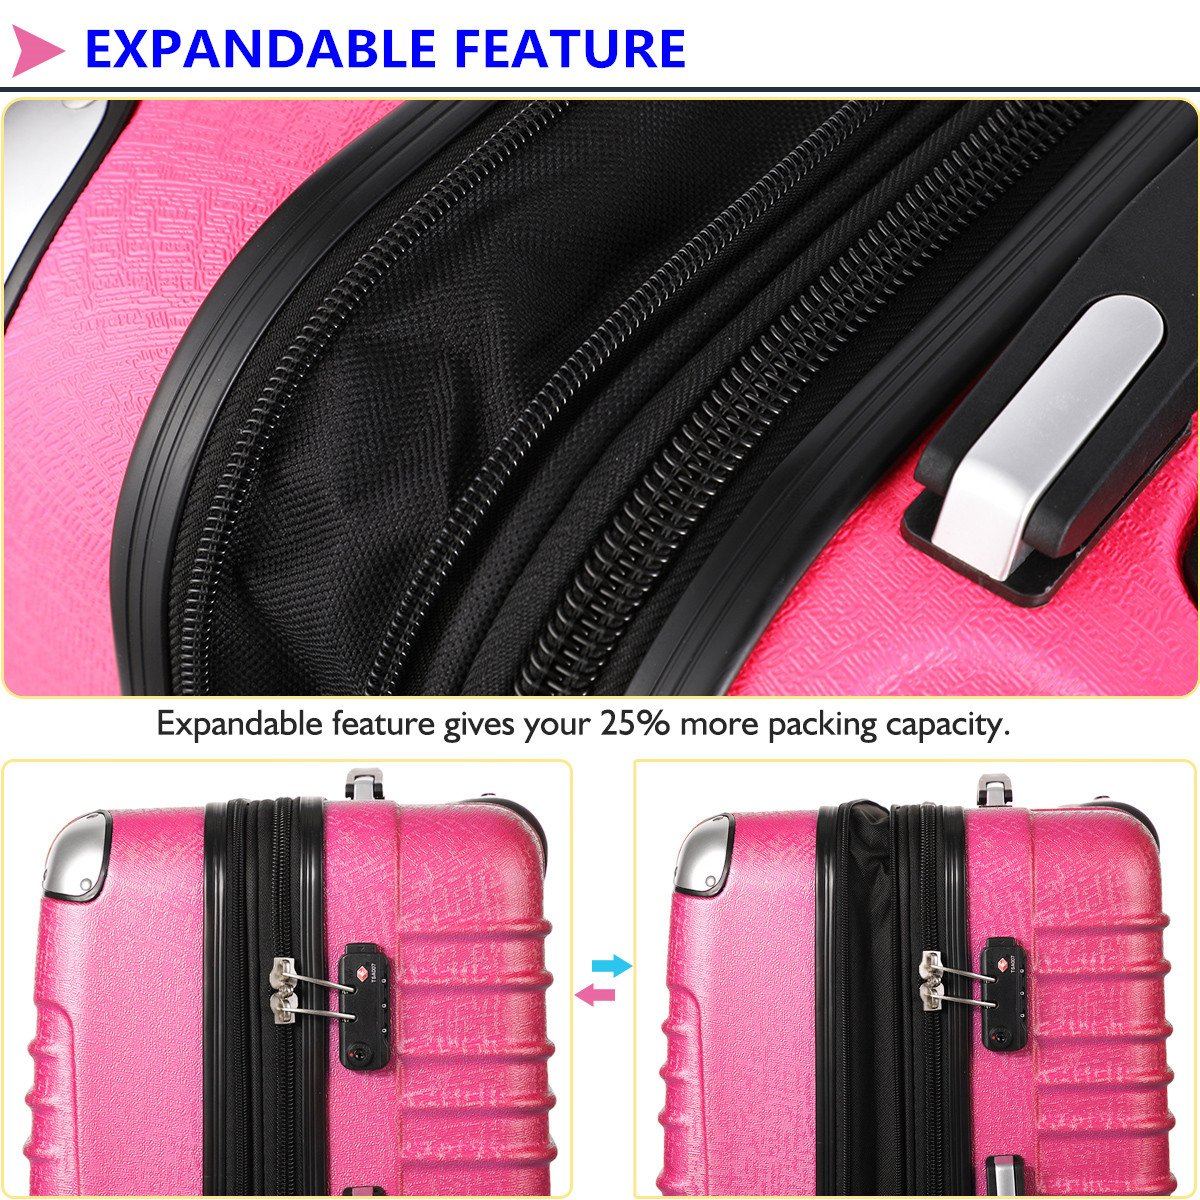 Hardside Carry On Luggage, Lightweight Expandable Spinner Carry Ons TSA Luggage Suitcase, 20 inches (HOT PINK) by Travel Joy (Image #3)